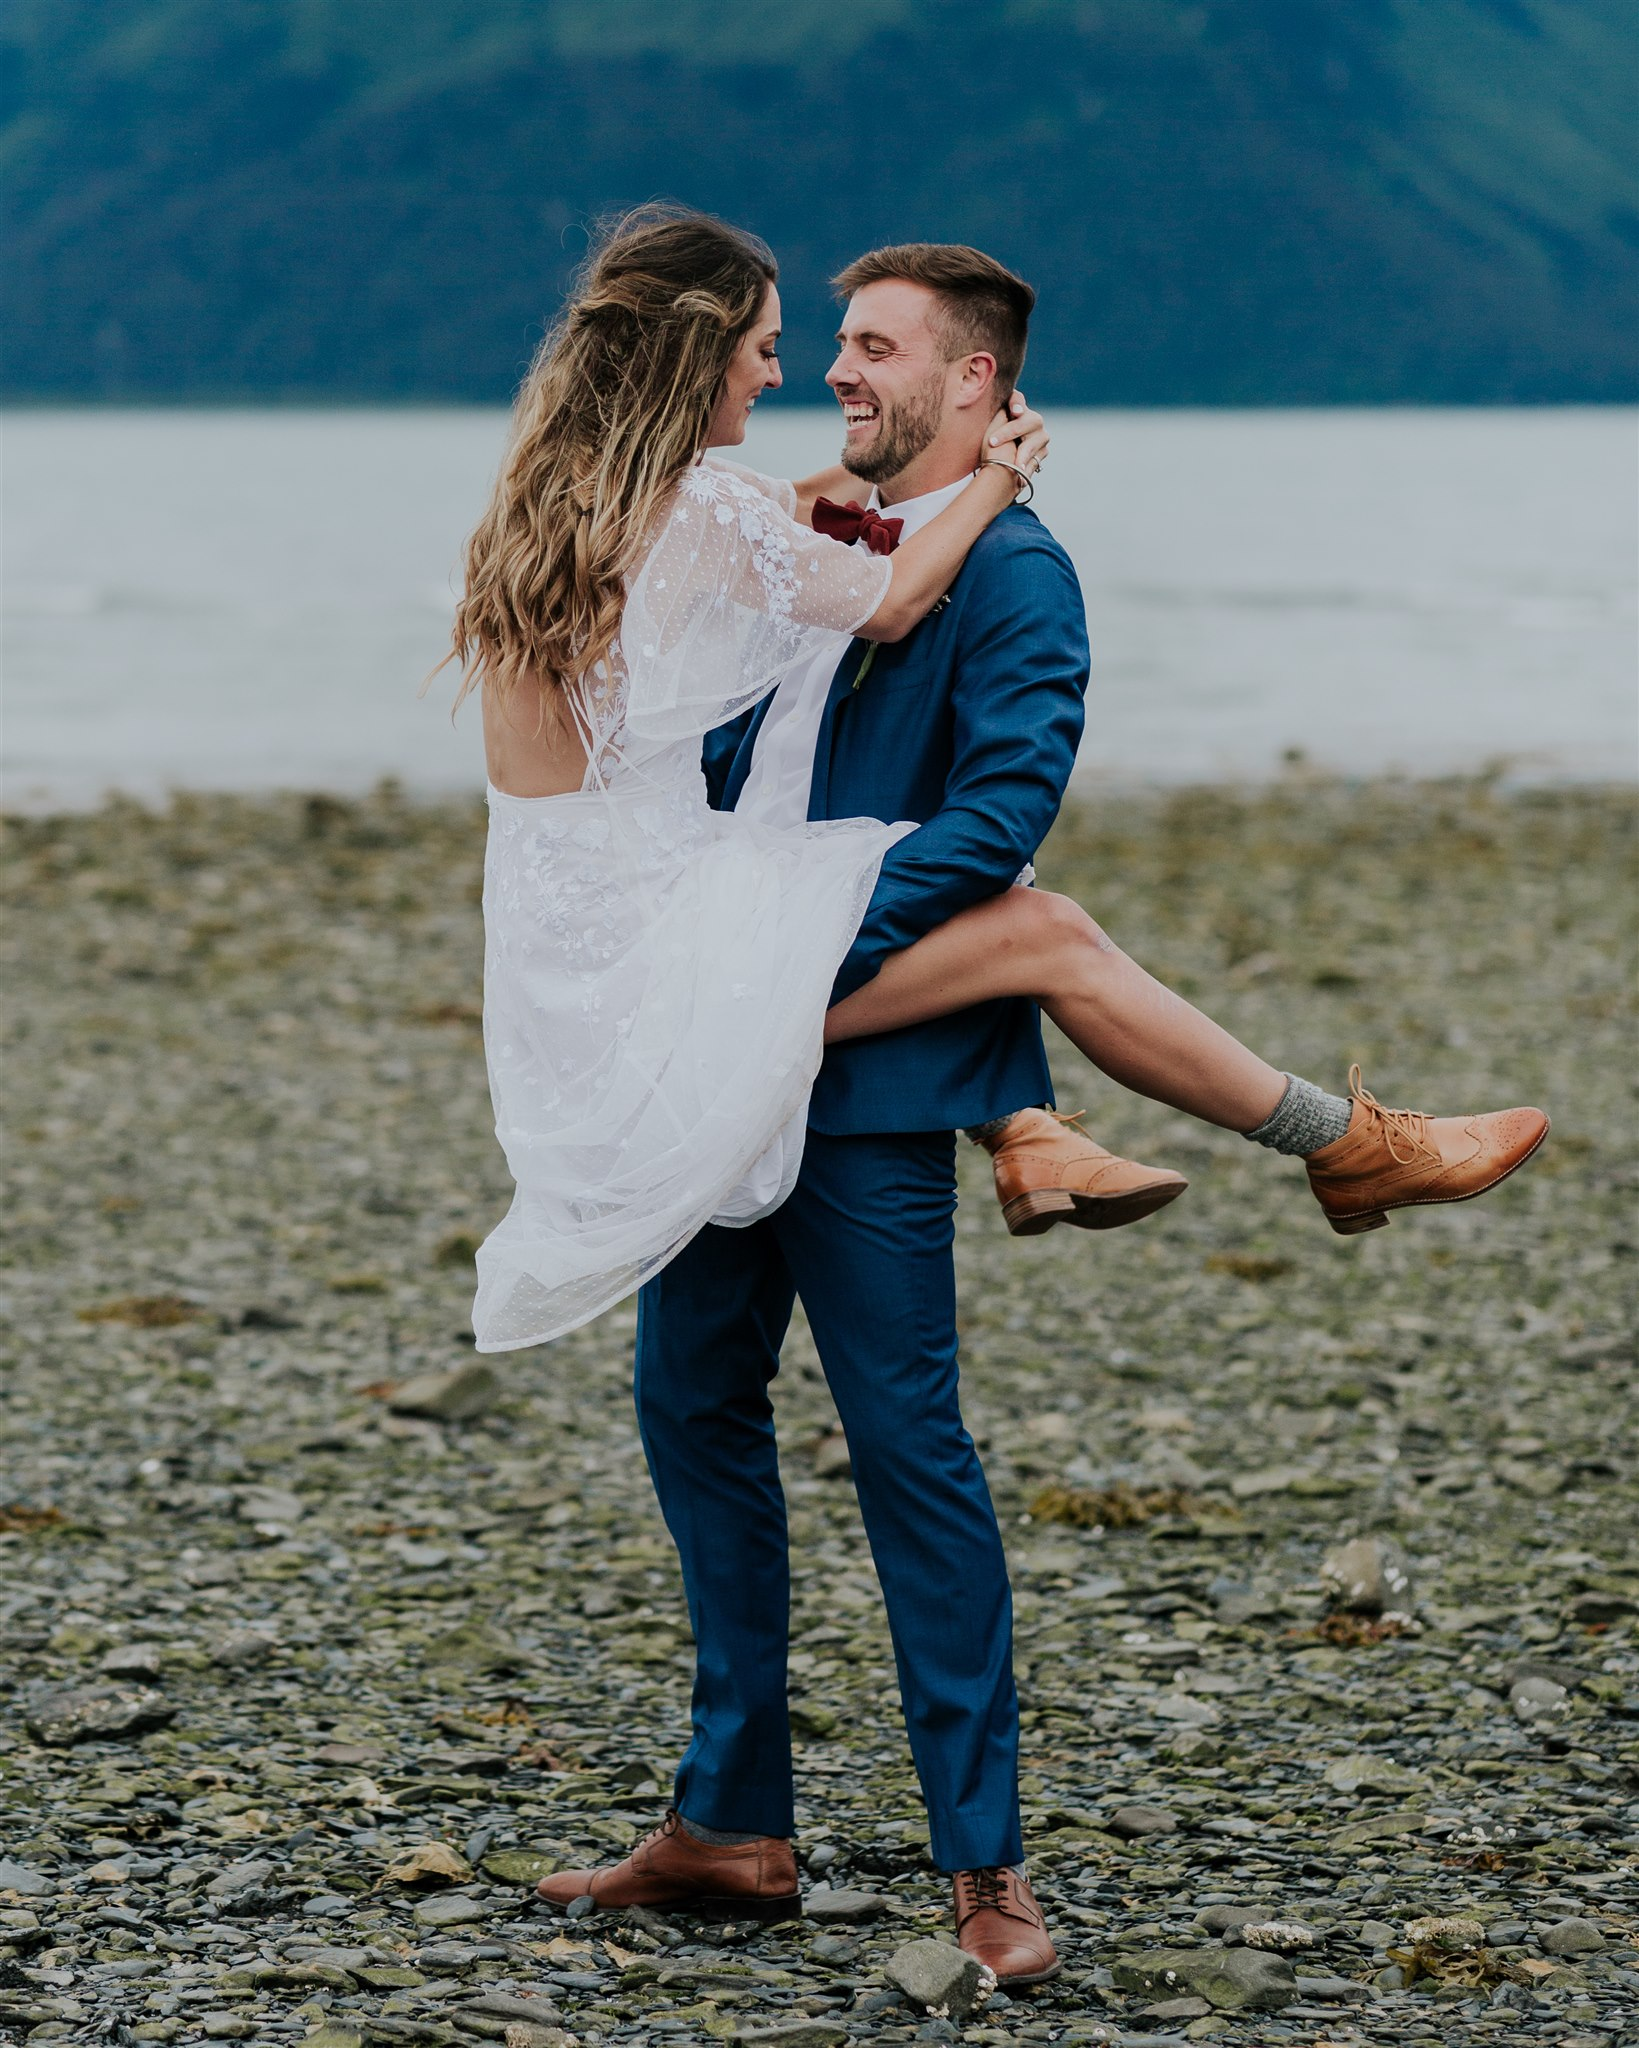 fun elopement photography poses alaska wedding